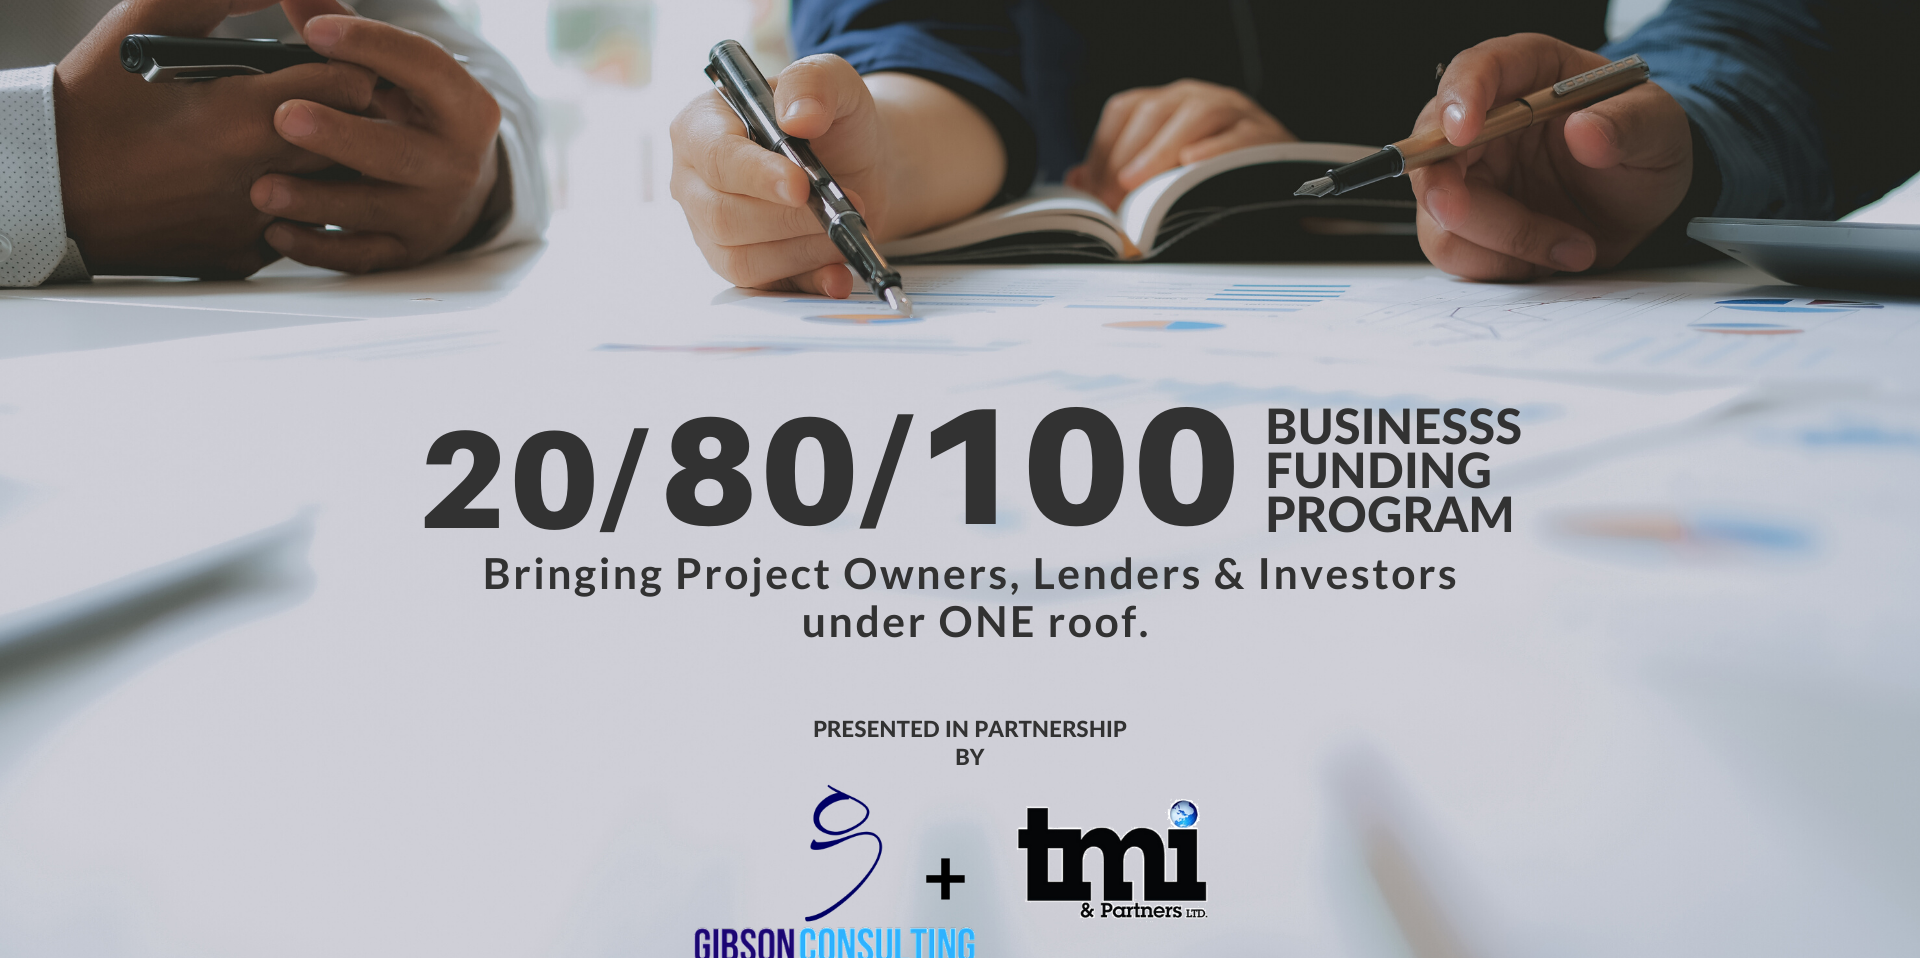 20/80/100 Business Funding